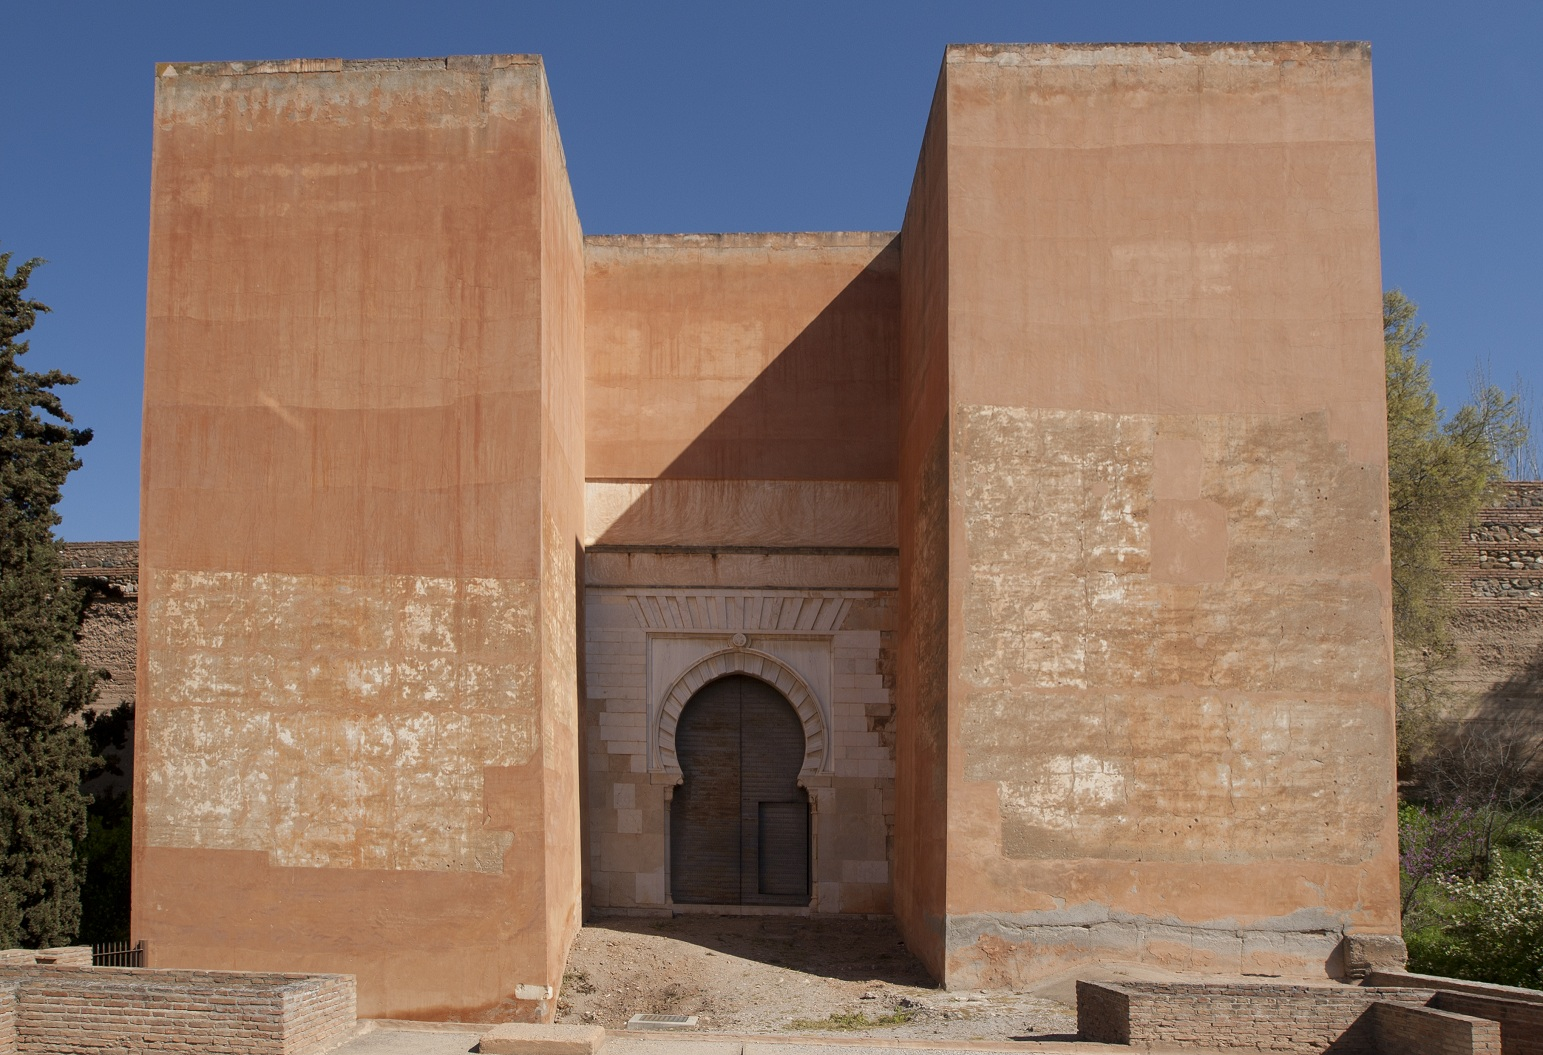 The Alhambra opens the enigmatic Gate of the Seven Floors to the public